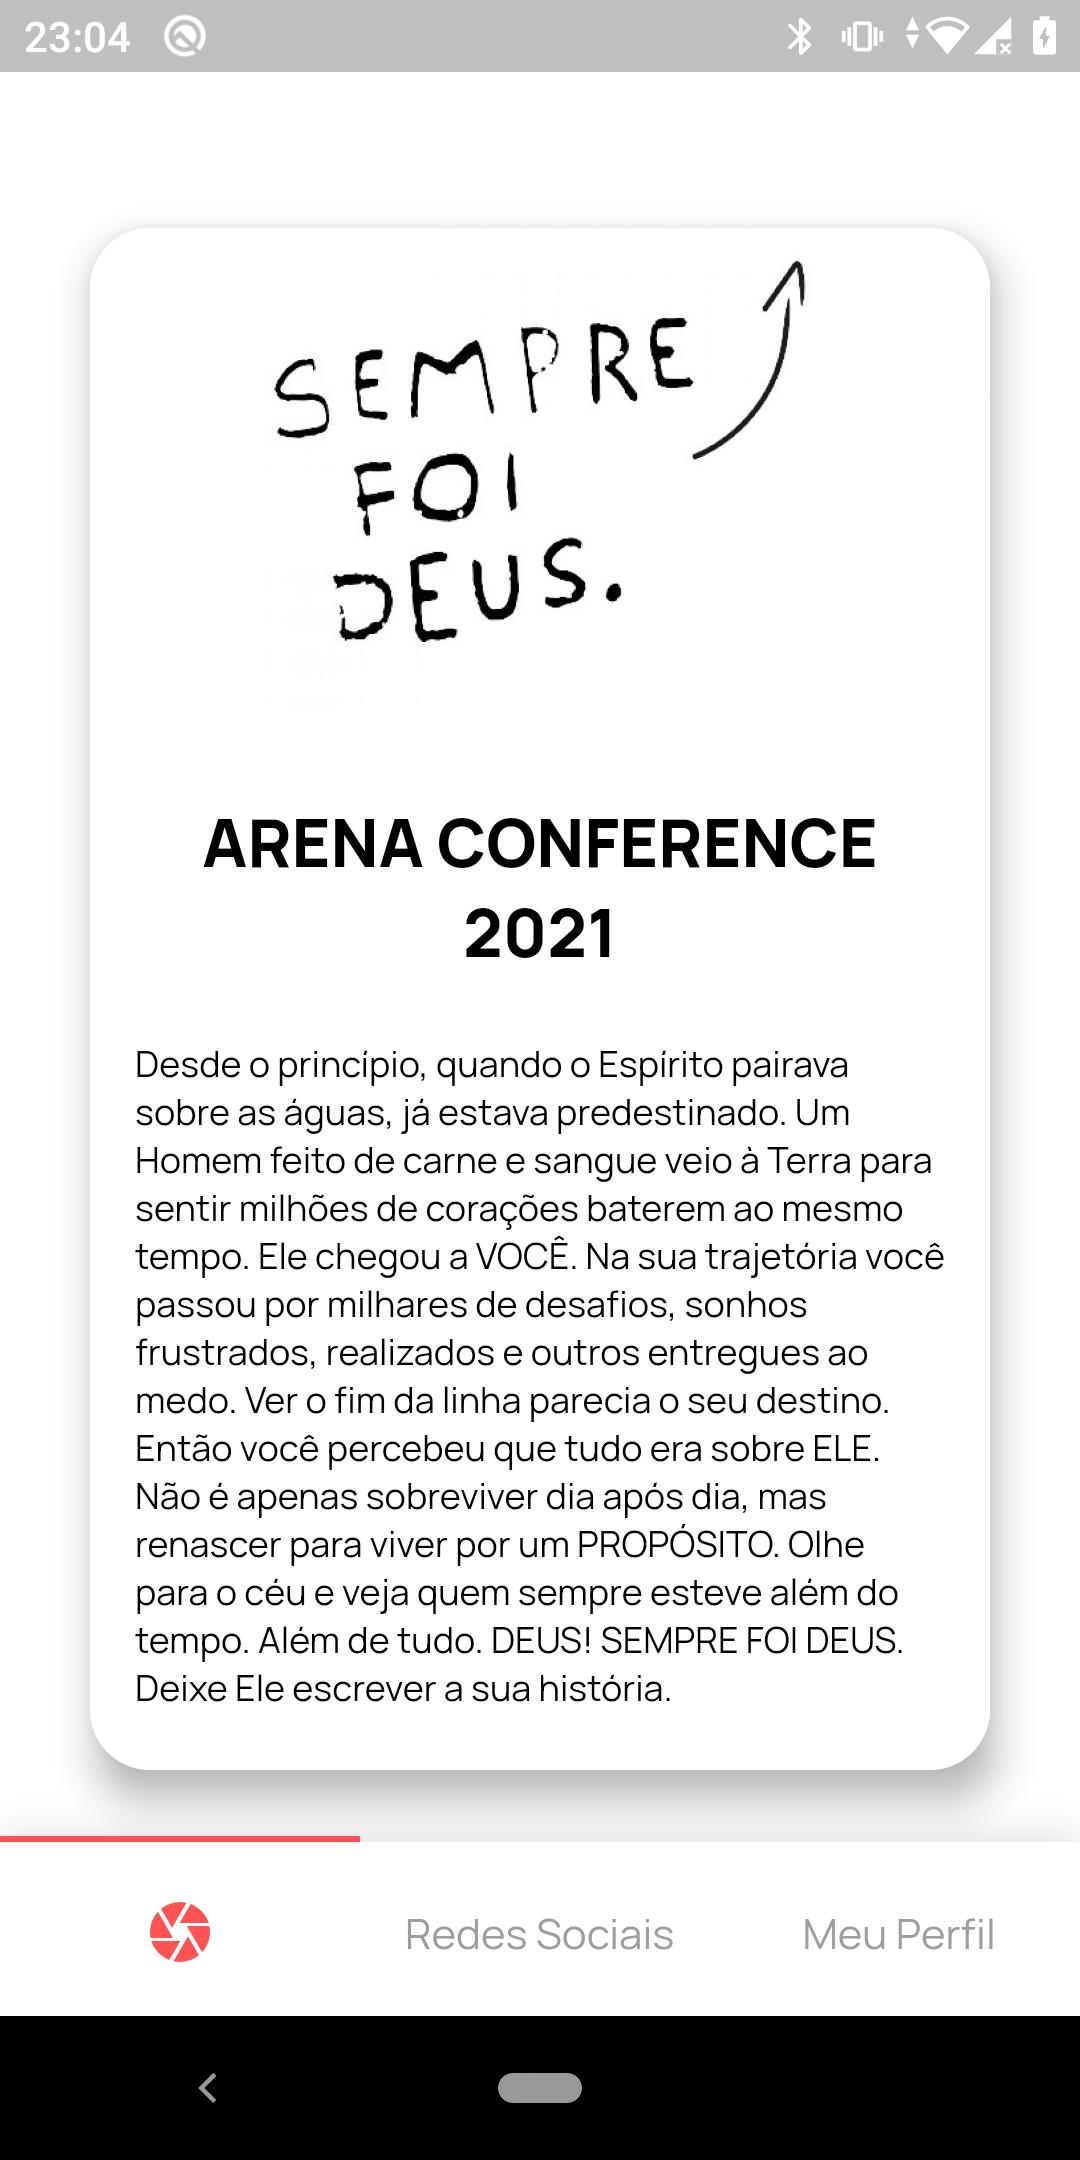 Arena Conference 1.1.4 Screenshot 19